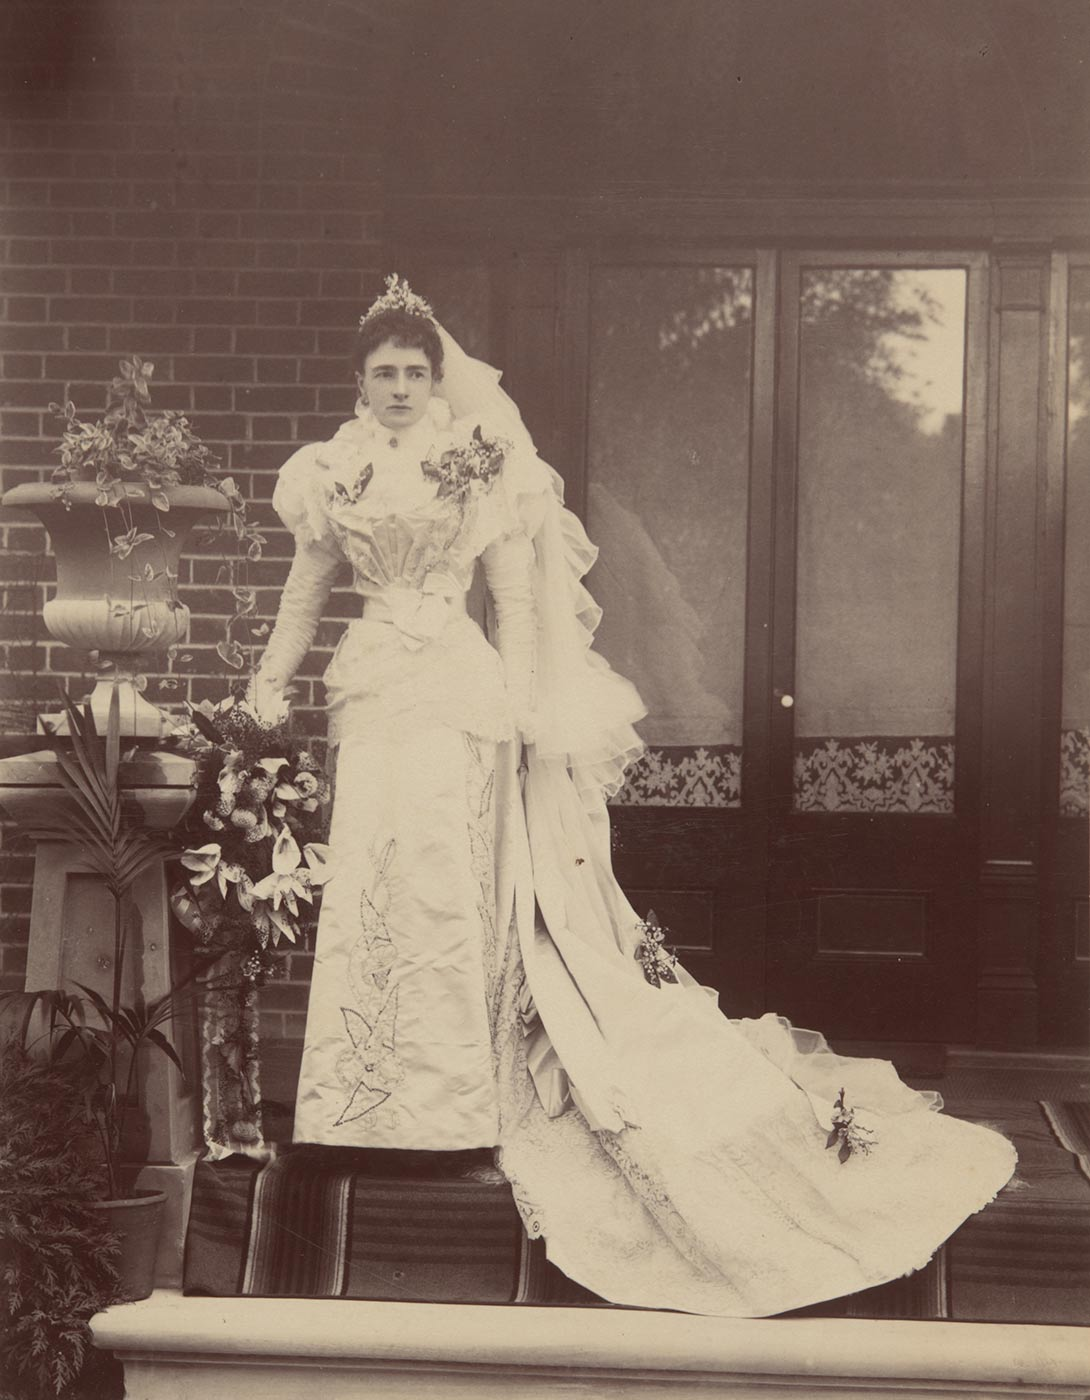 A woman wearing a wedding dress and standing on the front porch of a house. - click to view larger image